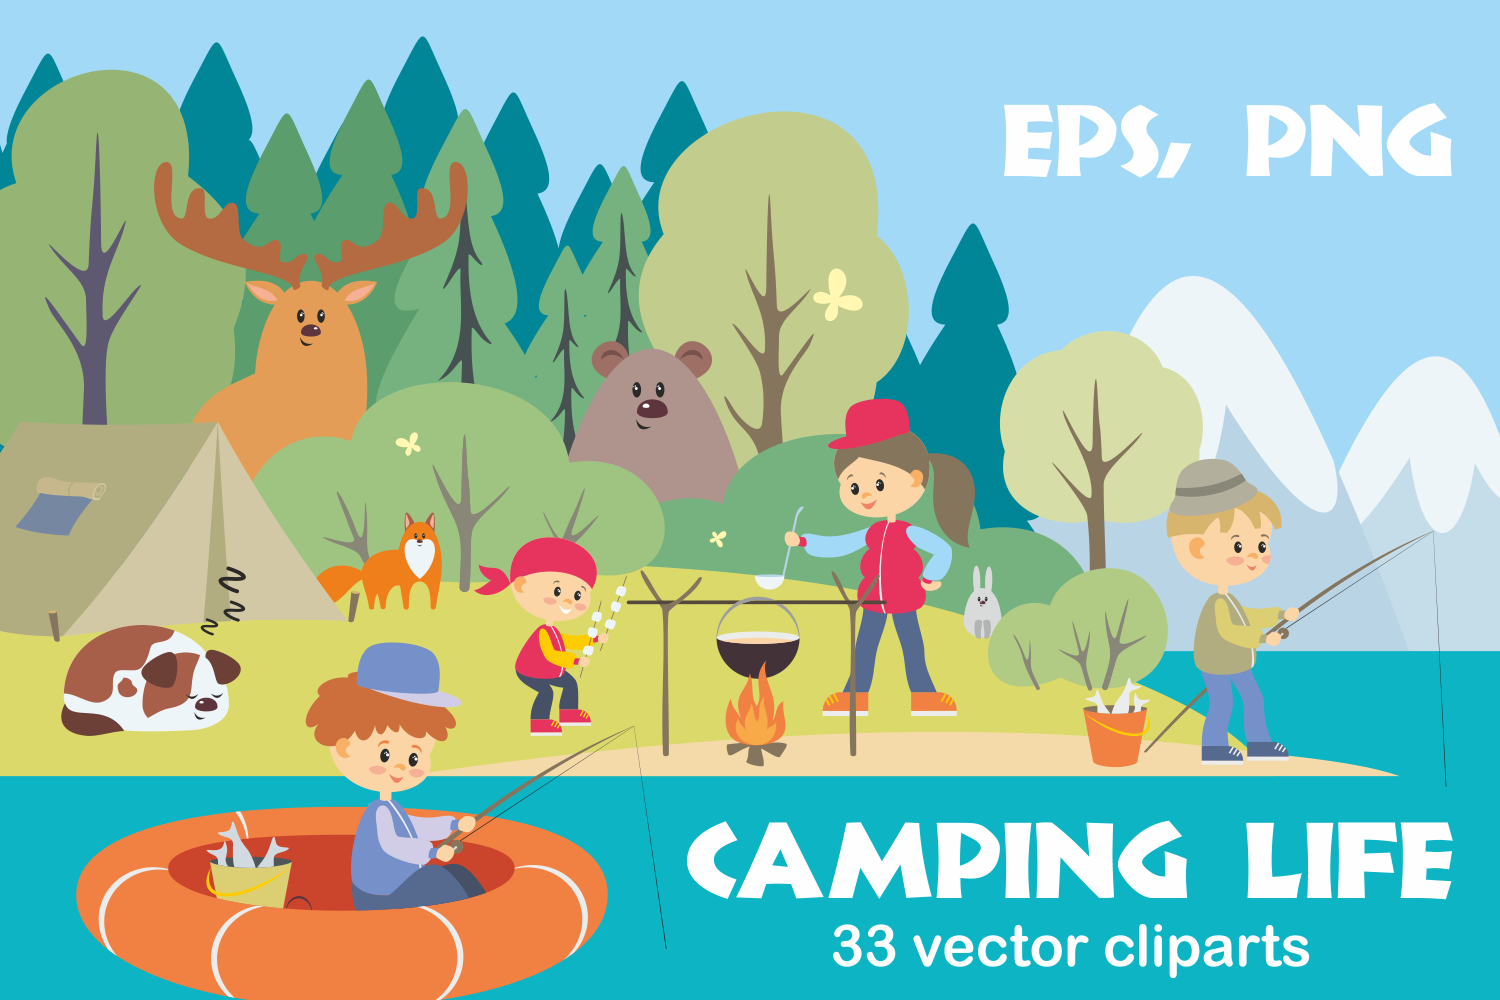 Camping life. Vector cliparts. example image 1